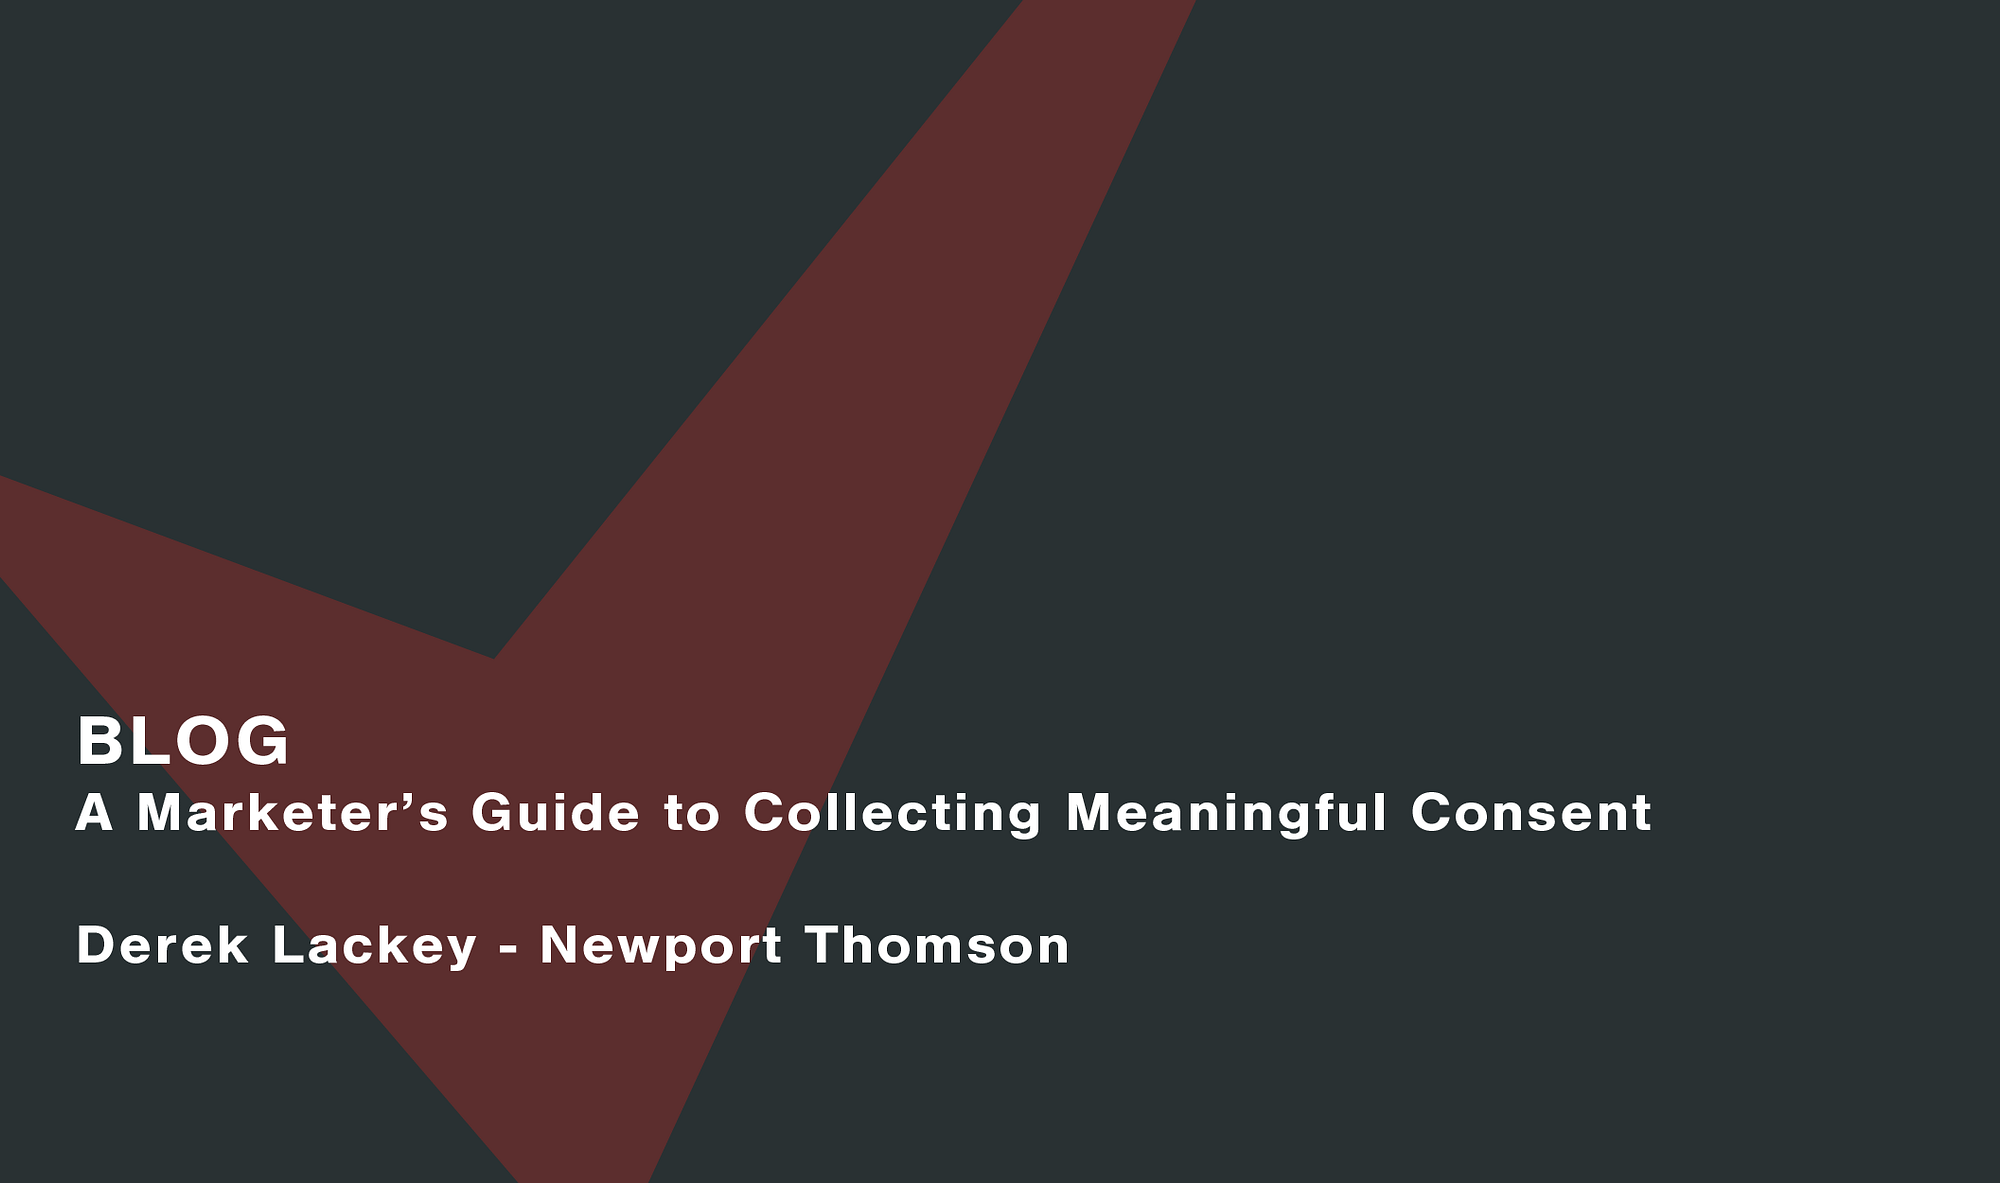 A-marketers-guide-to-collecting-meaningful-consent